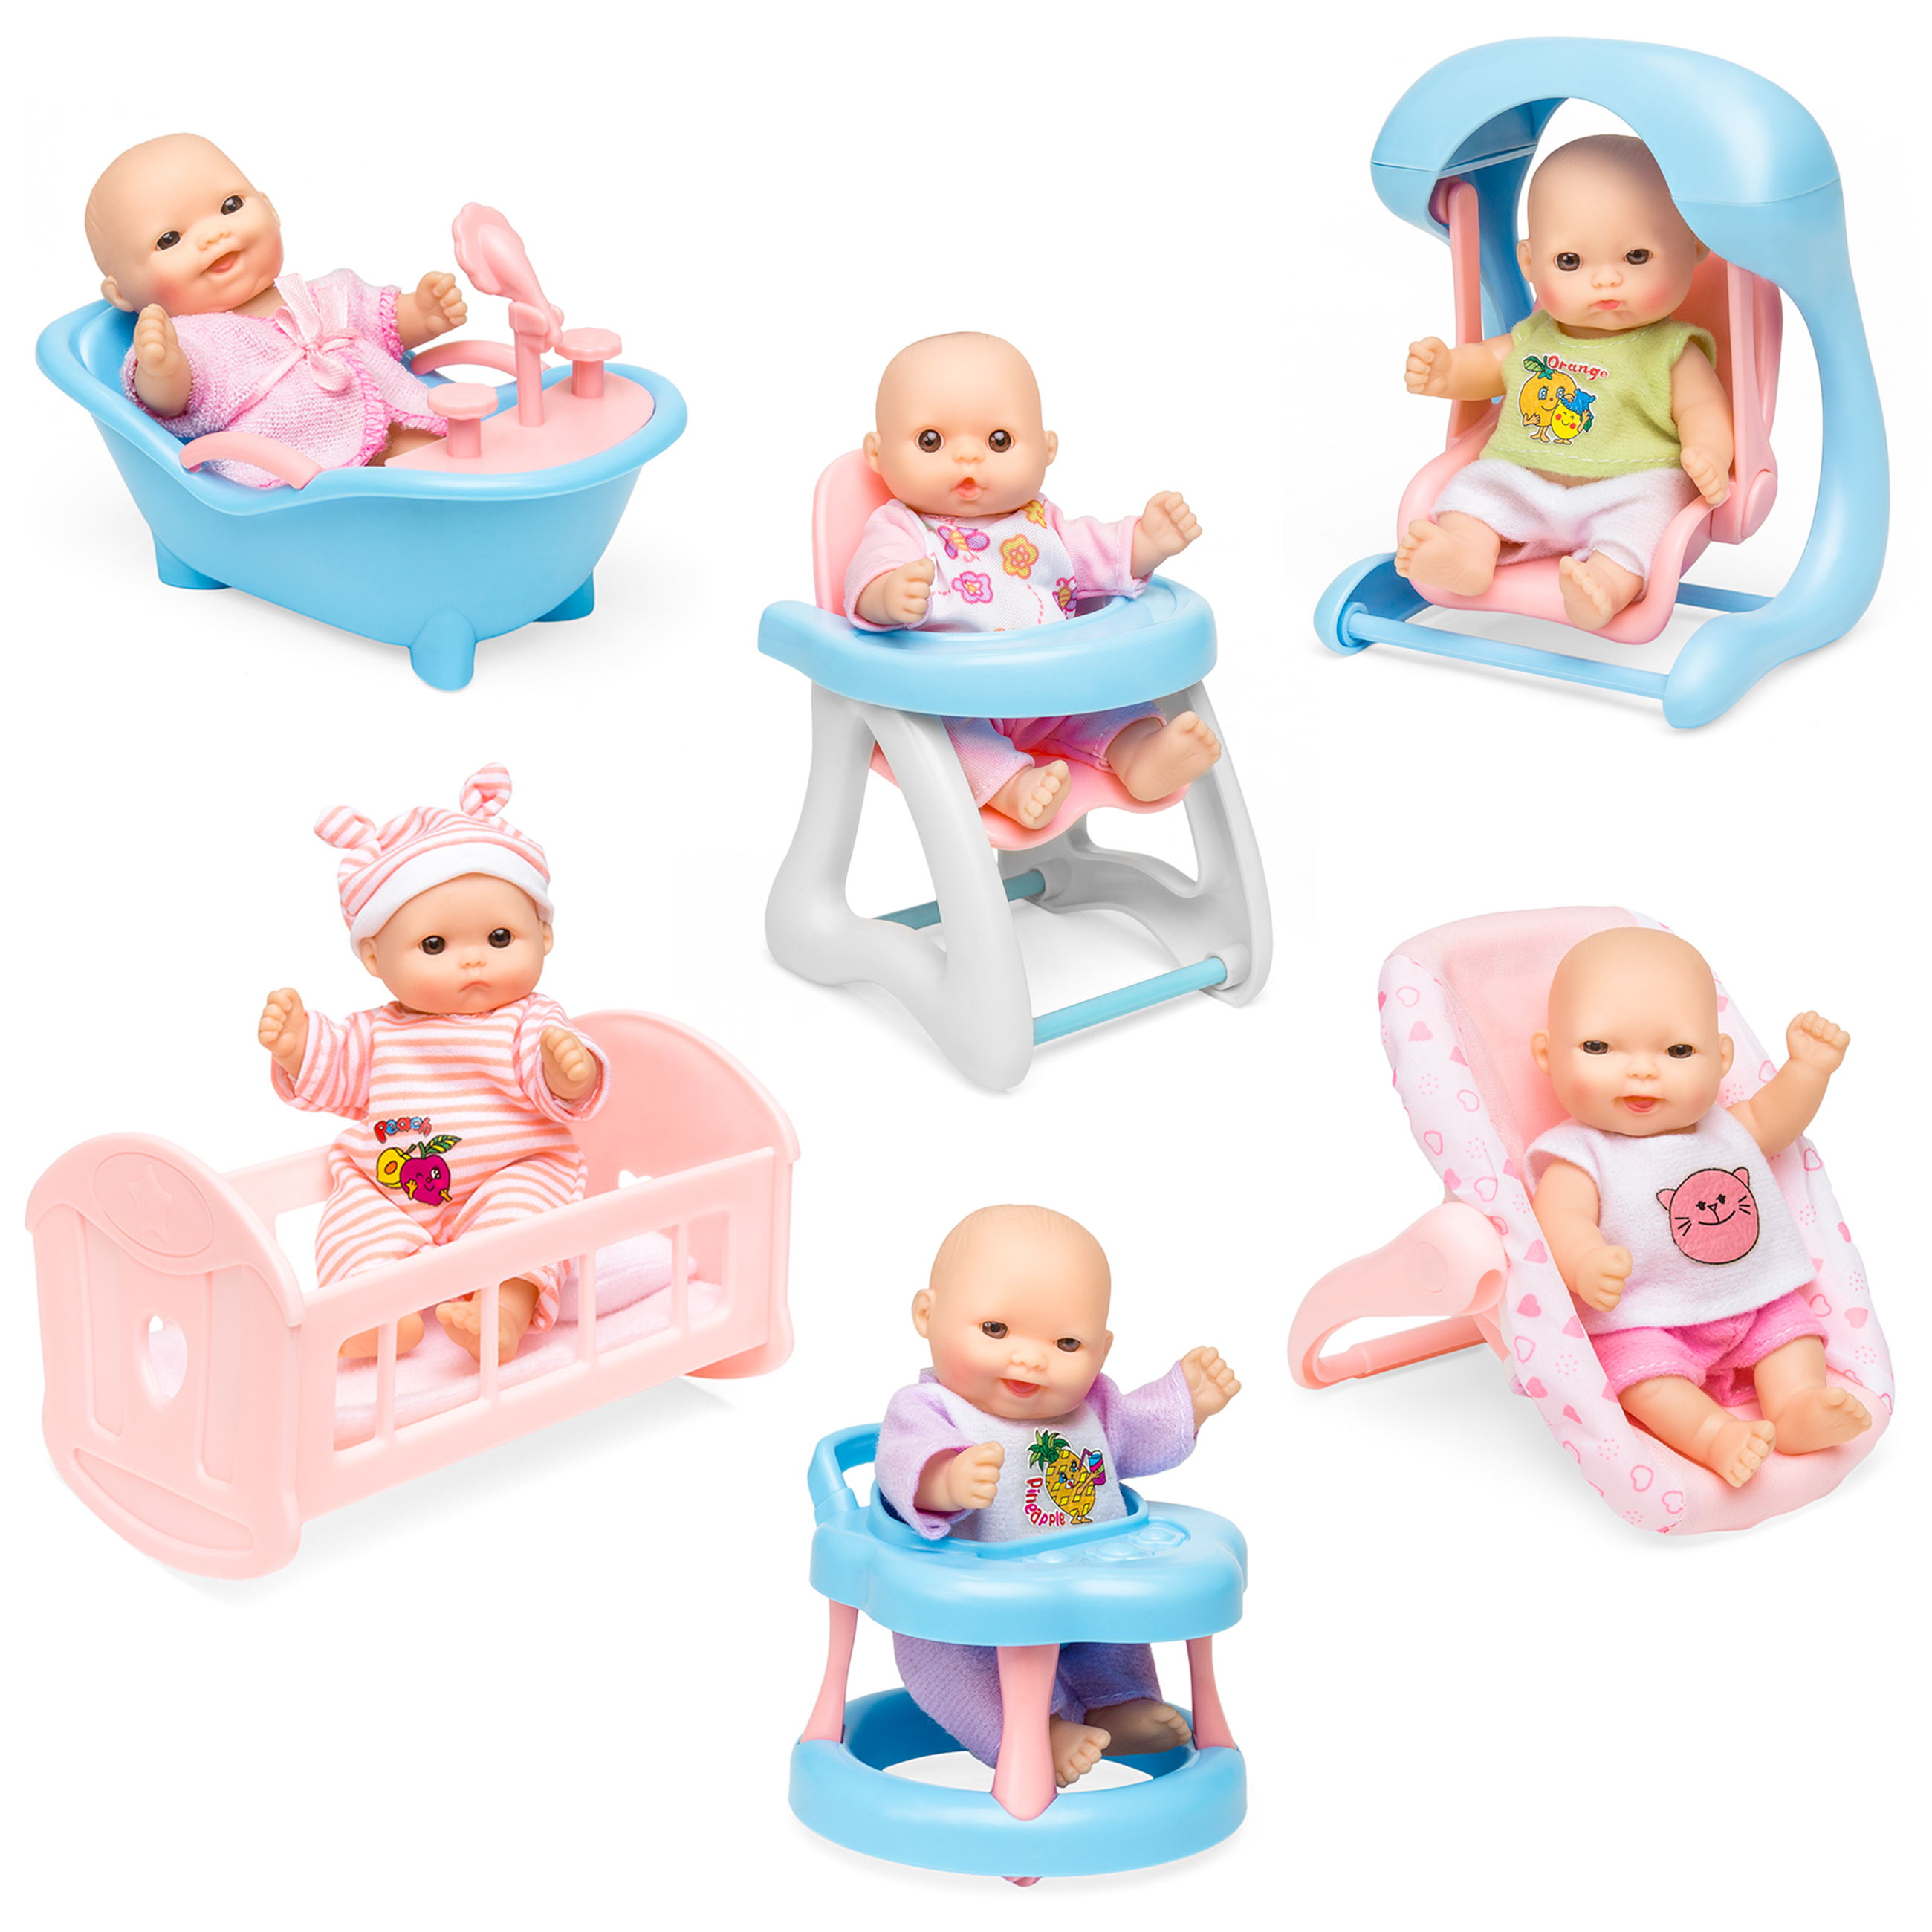 Best Choice Products Set of 6 Mini Baby Dolls Toy w  Cradle, High Chair, Walker, Swing, Bathtub, Infant Seat by Best Choice Products